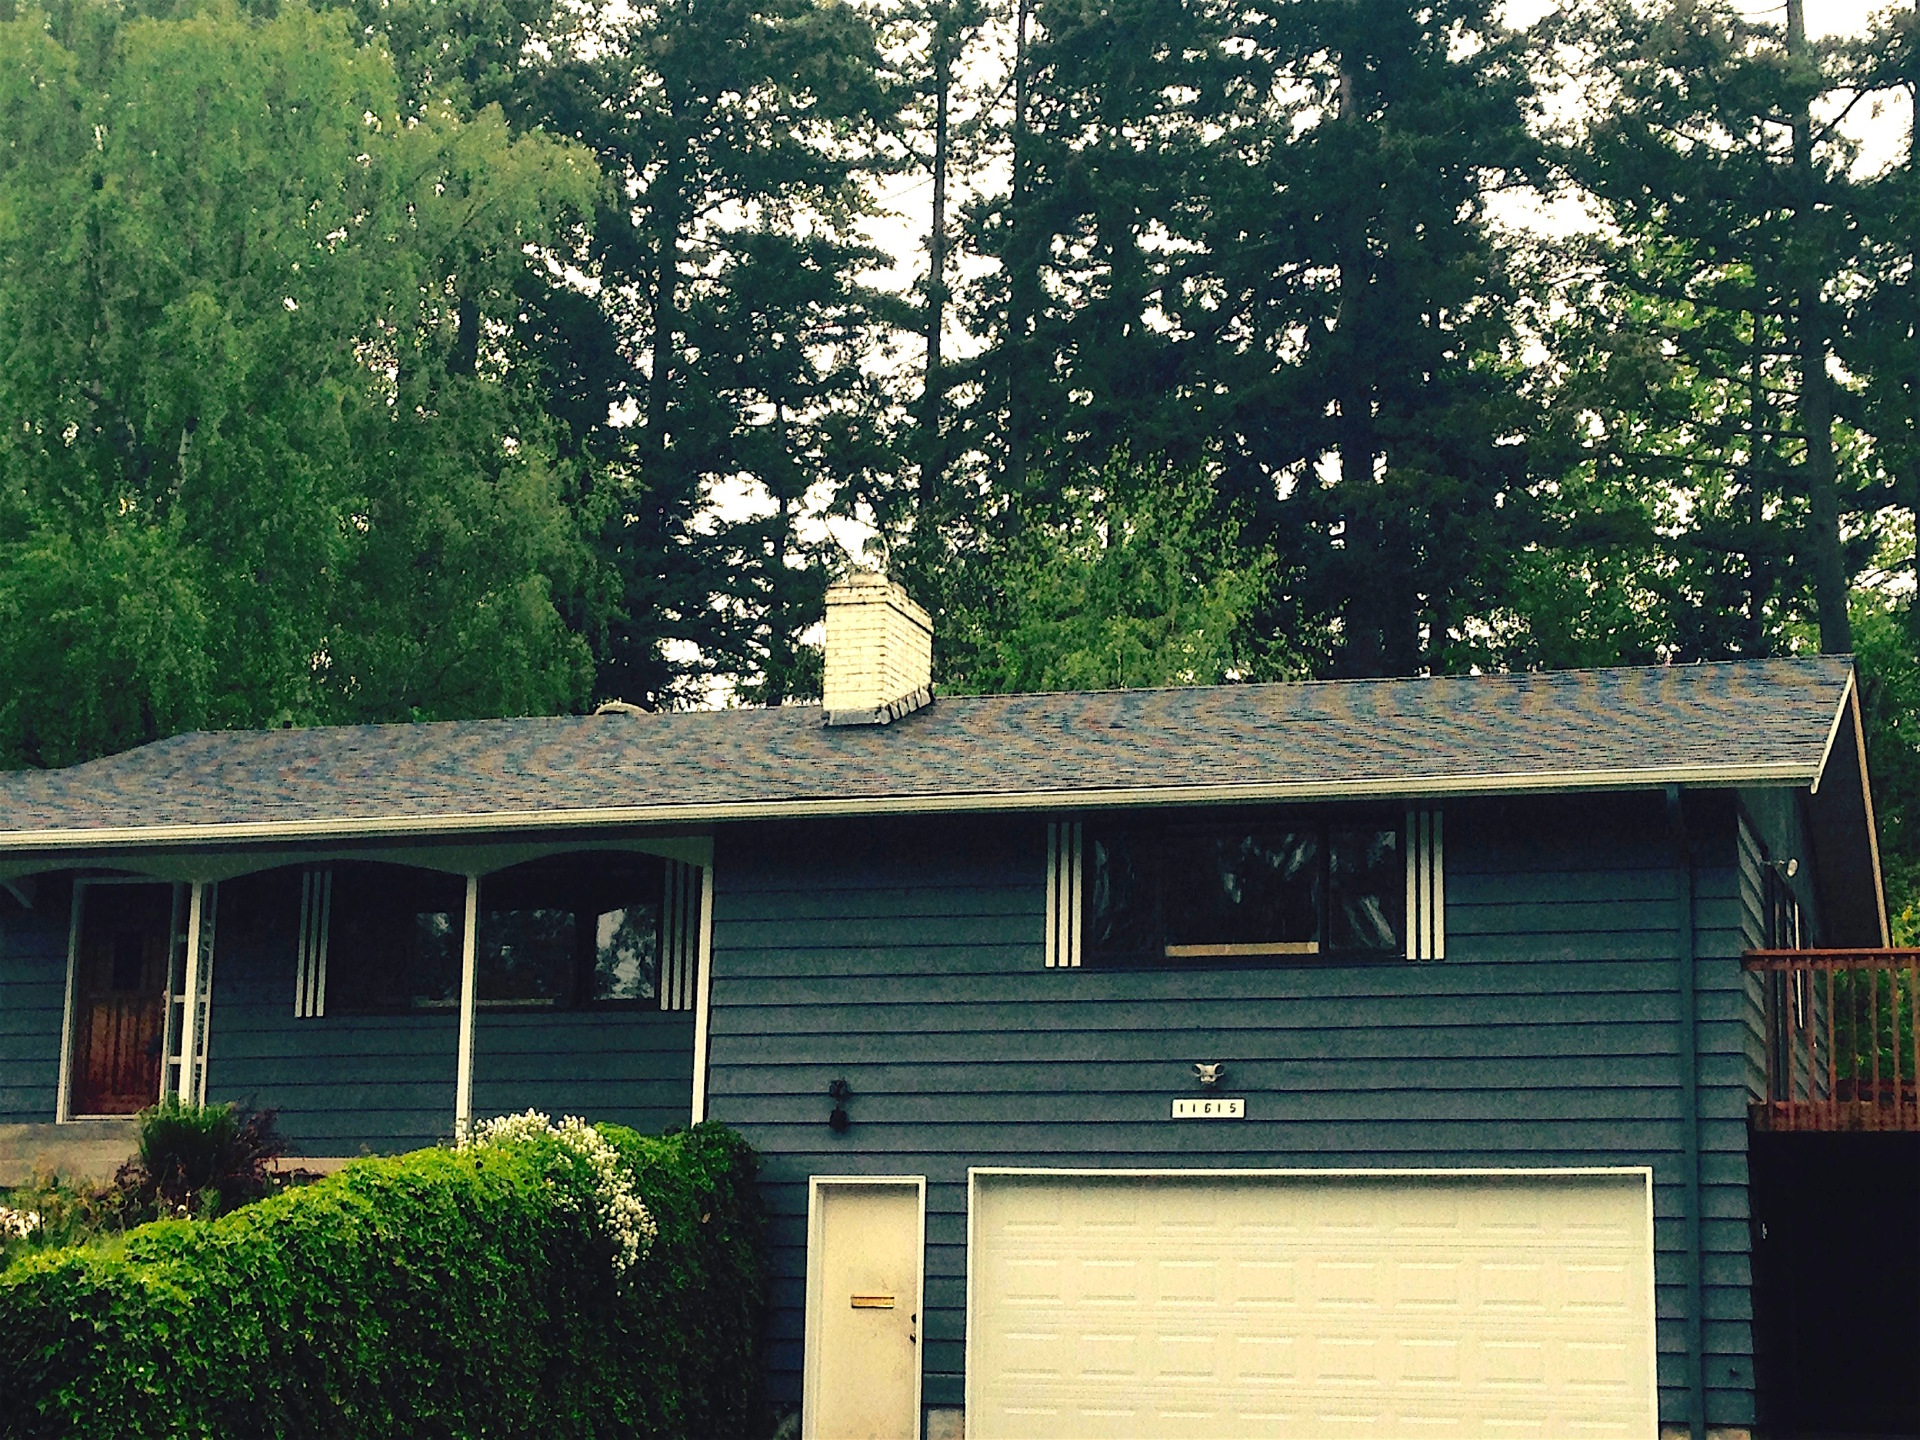 Residential Roofing Contractor Serving Puyallup, WA